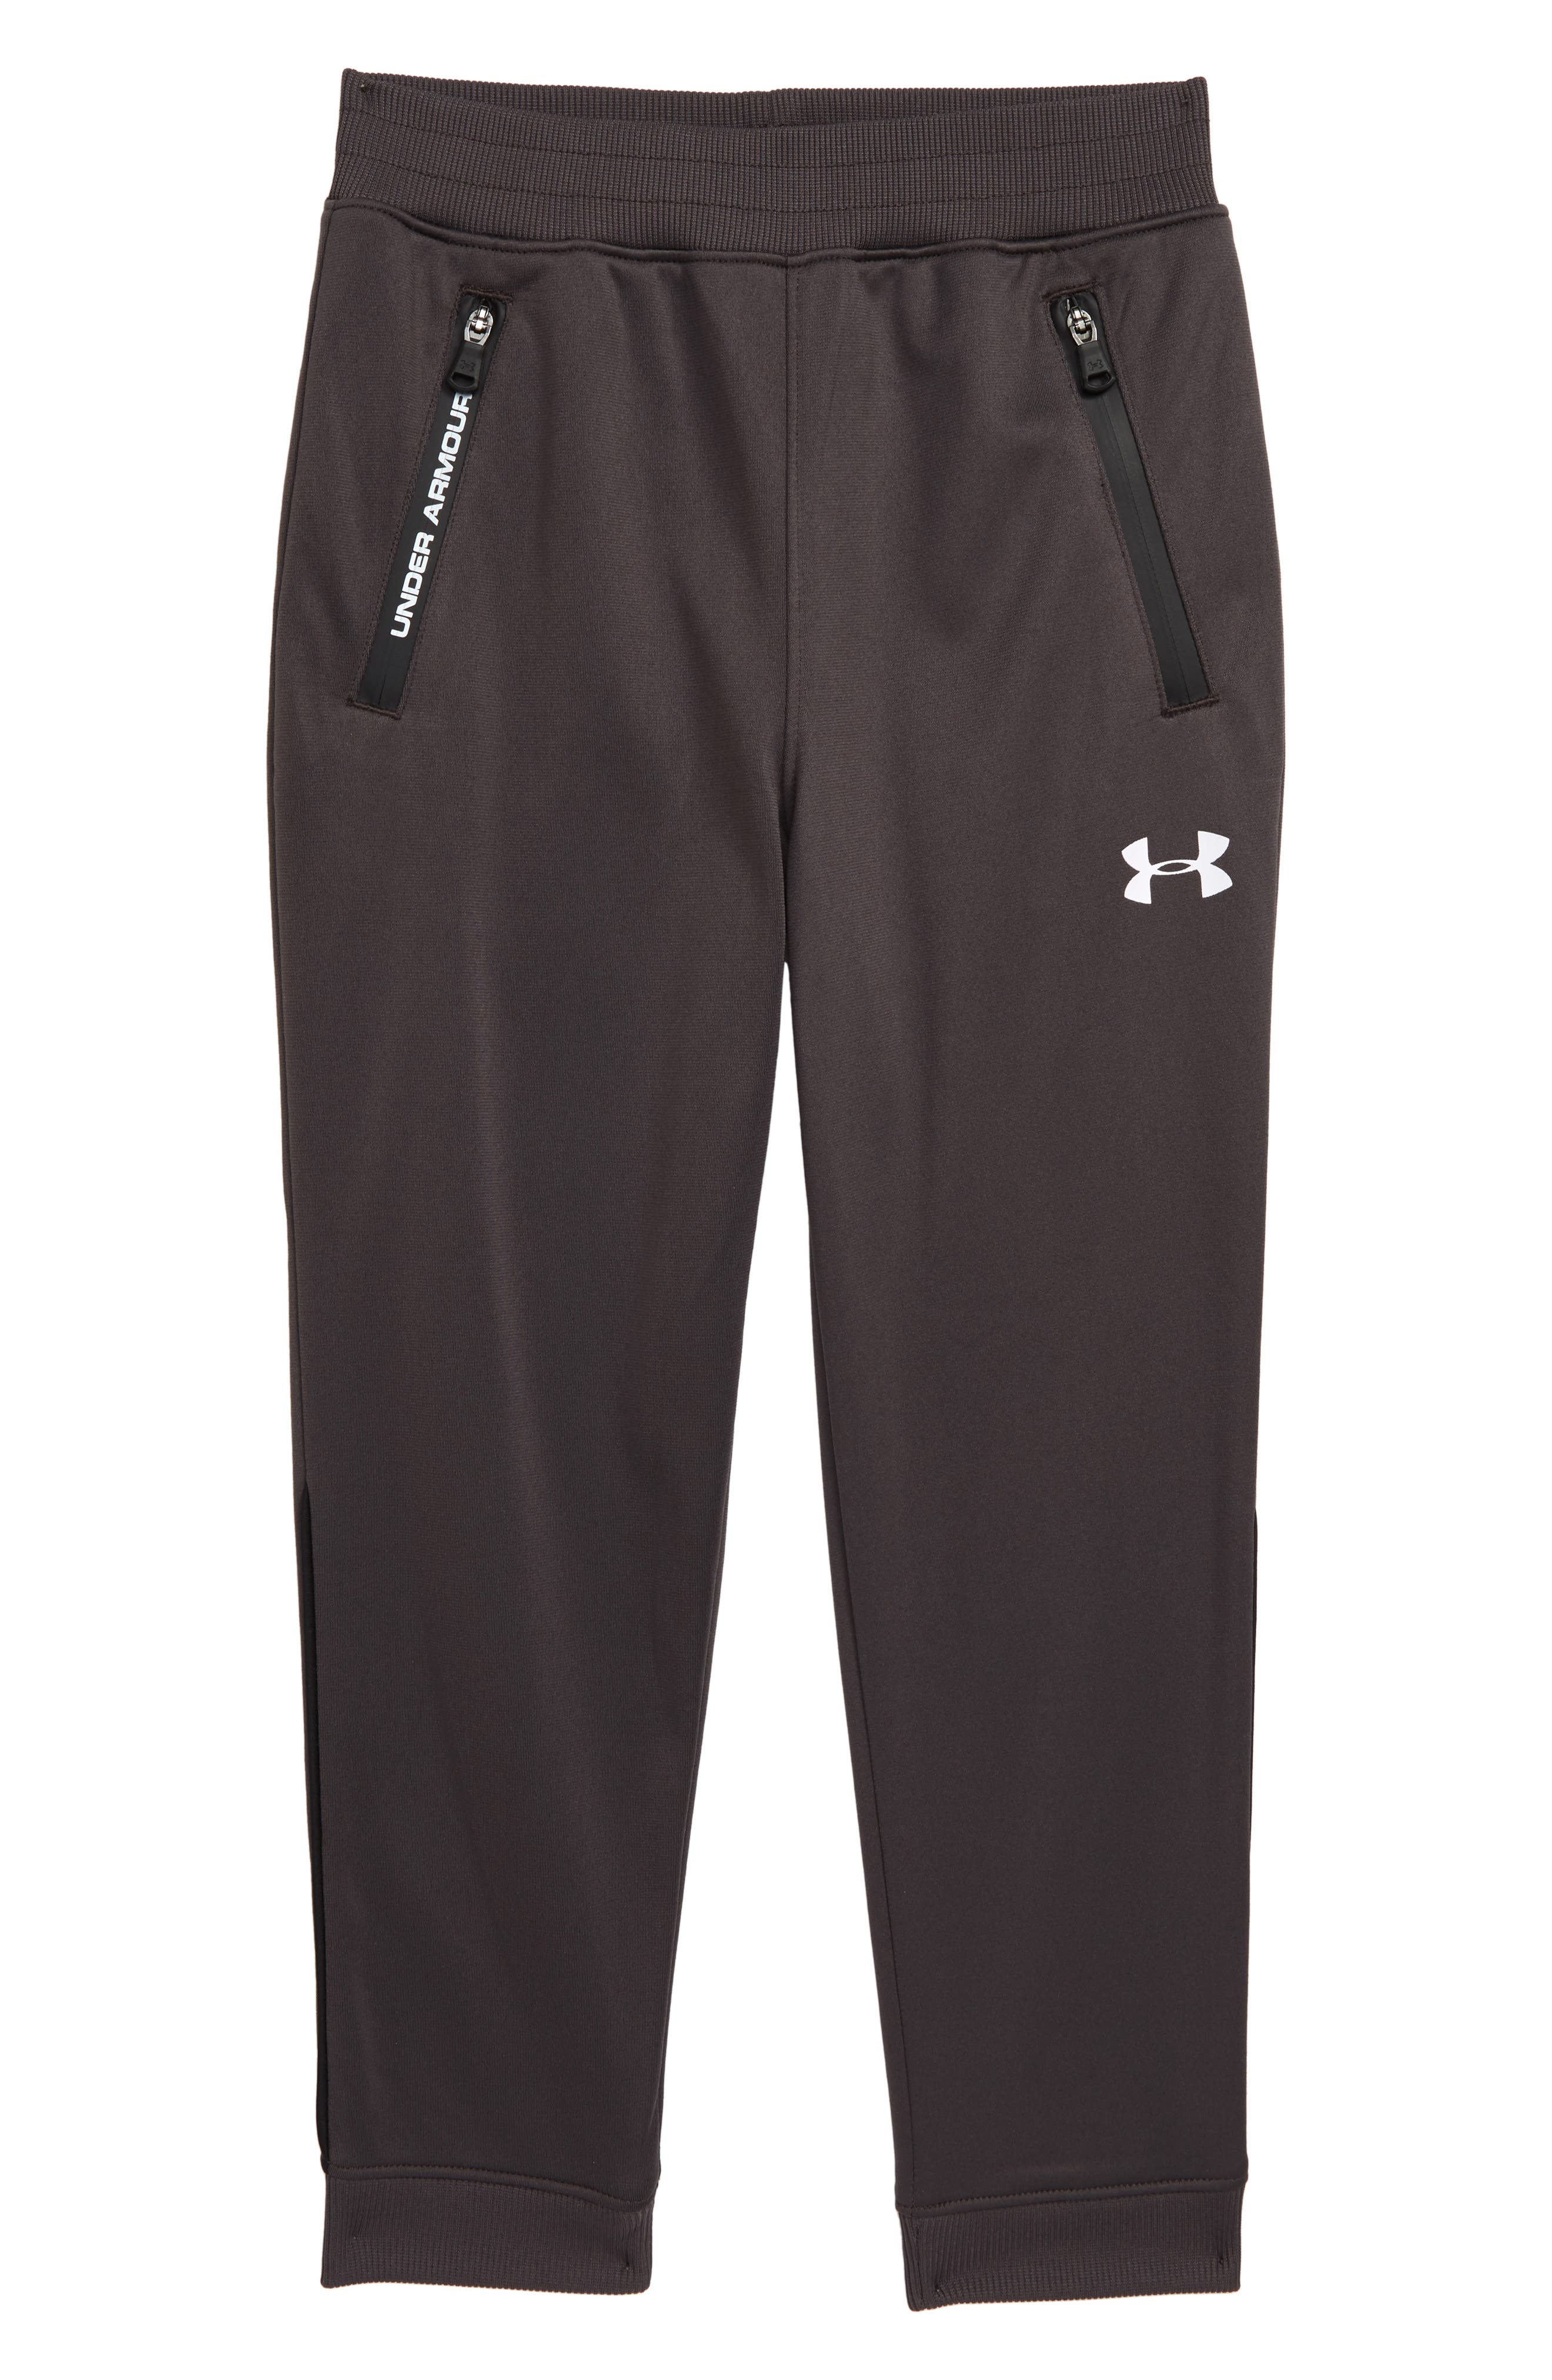 Under Armour Boys Gray Graphite Youth Sports Pants Size 3T NEW